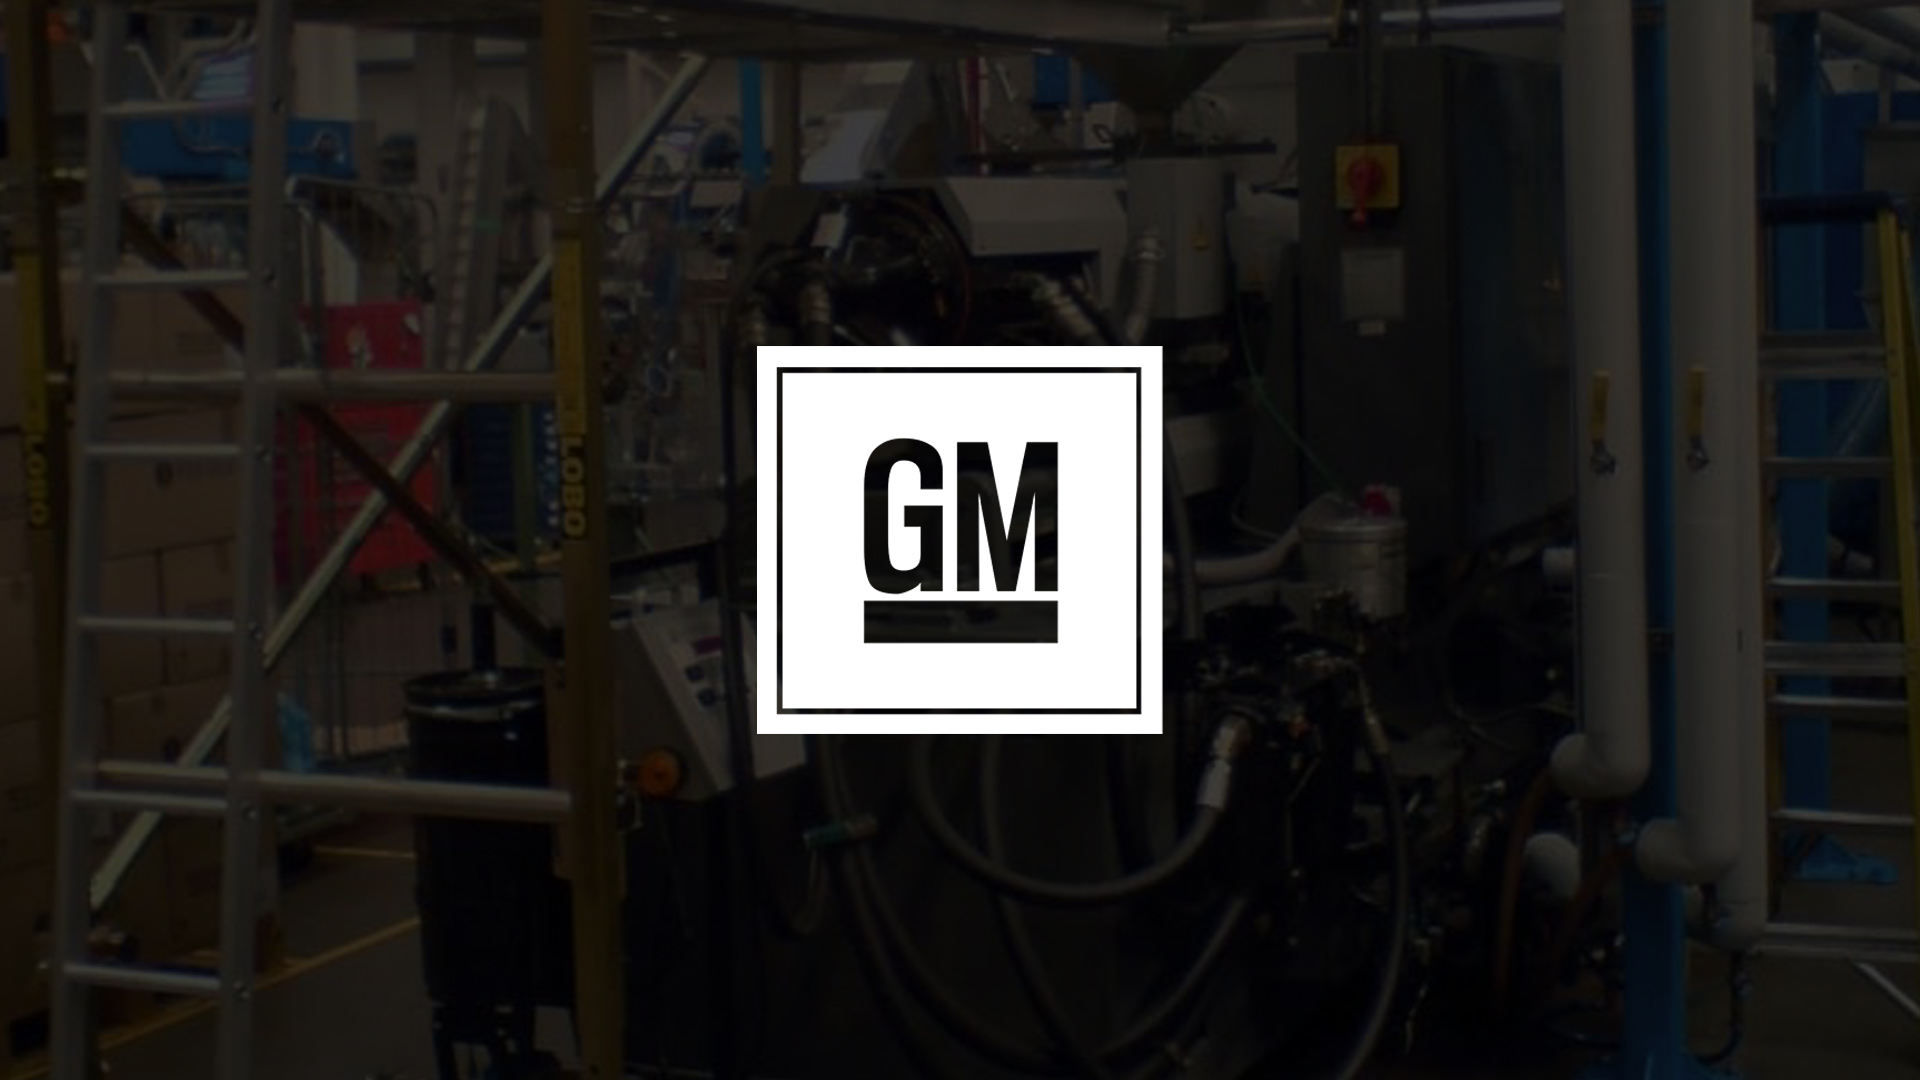 General Motors: Automotive